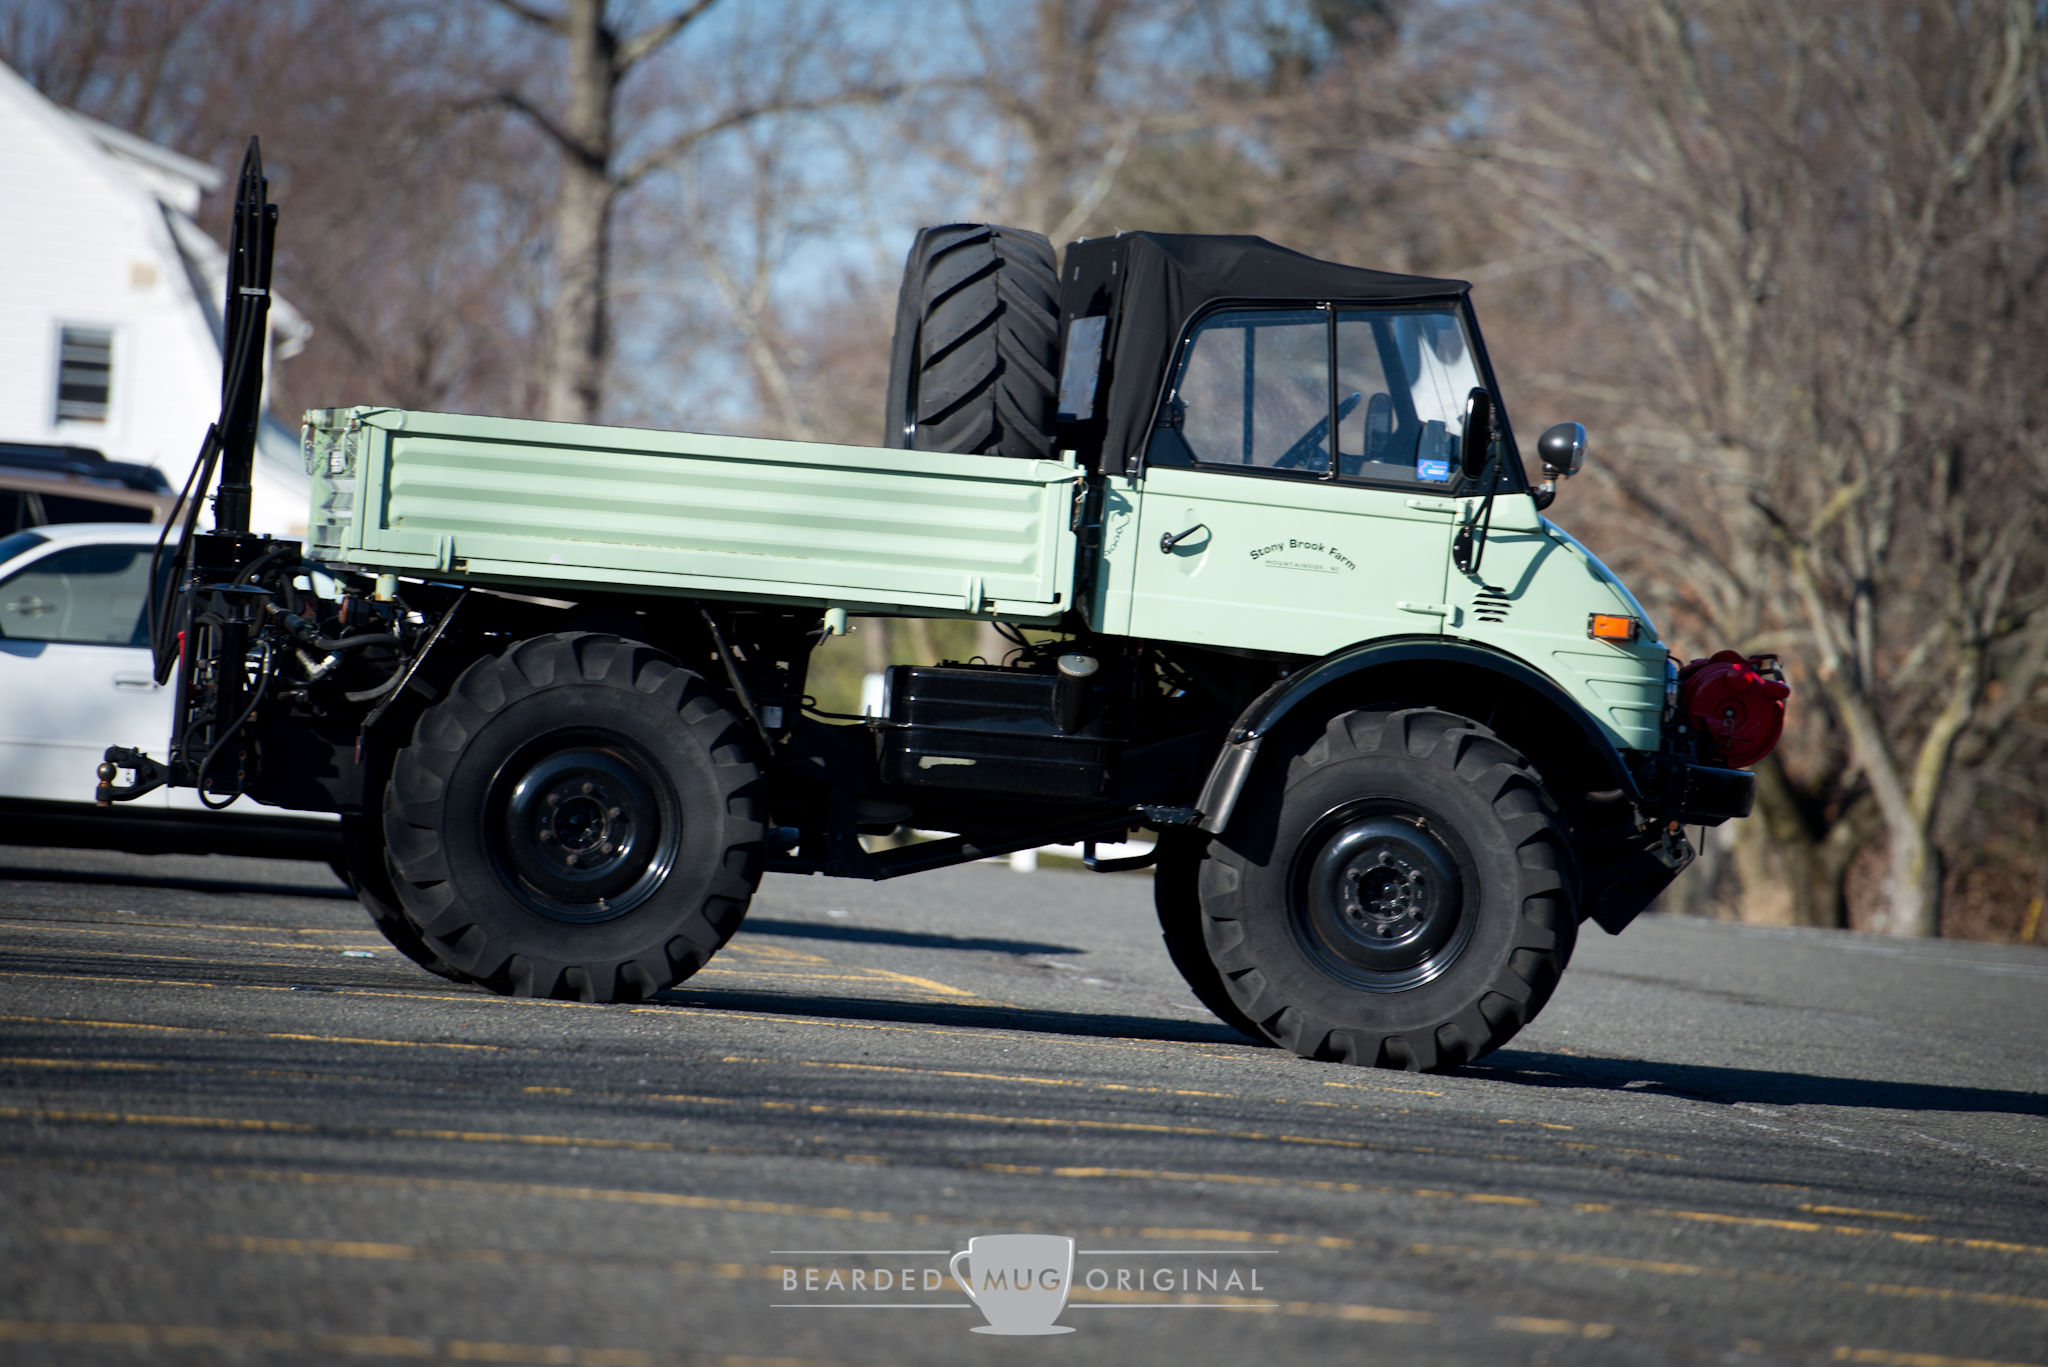 This Unimog, brought by Stony Brook Farm, is outfitted with everything that makes the Unimog badass;giant knobby tires with a spare, winch, canvas top, snorkel (not pictured), and some sort of hydraulic attachment on the rear.